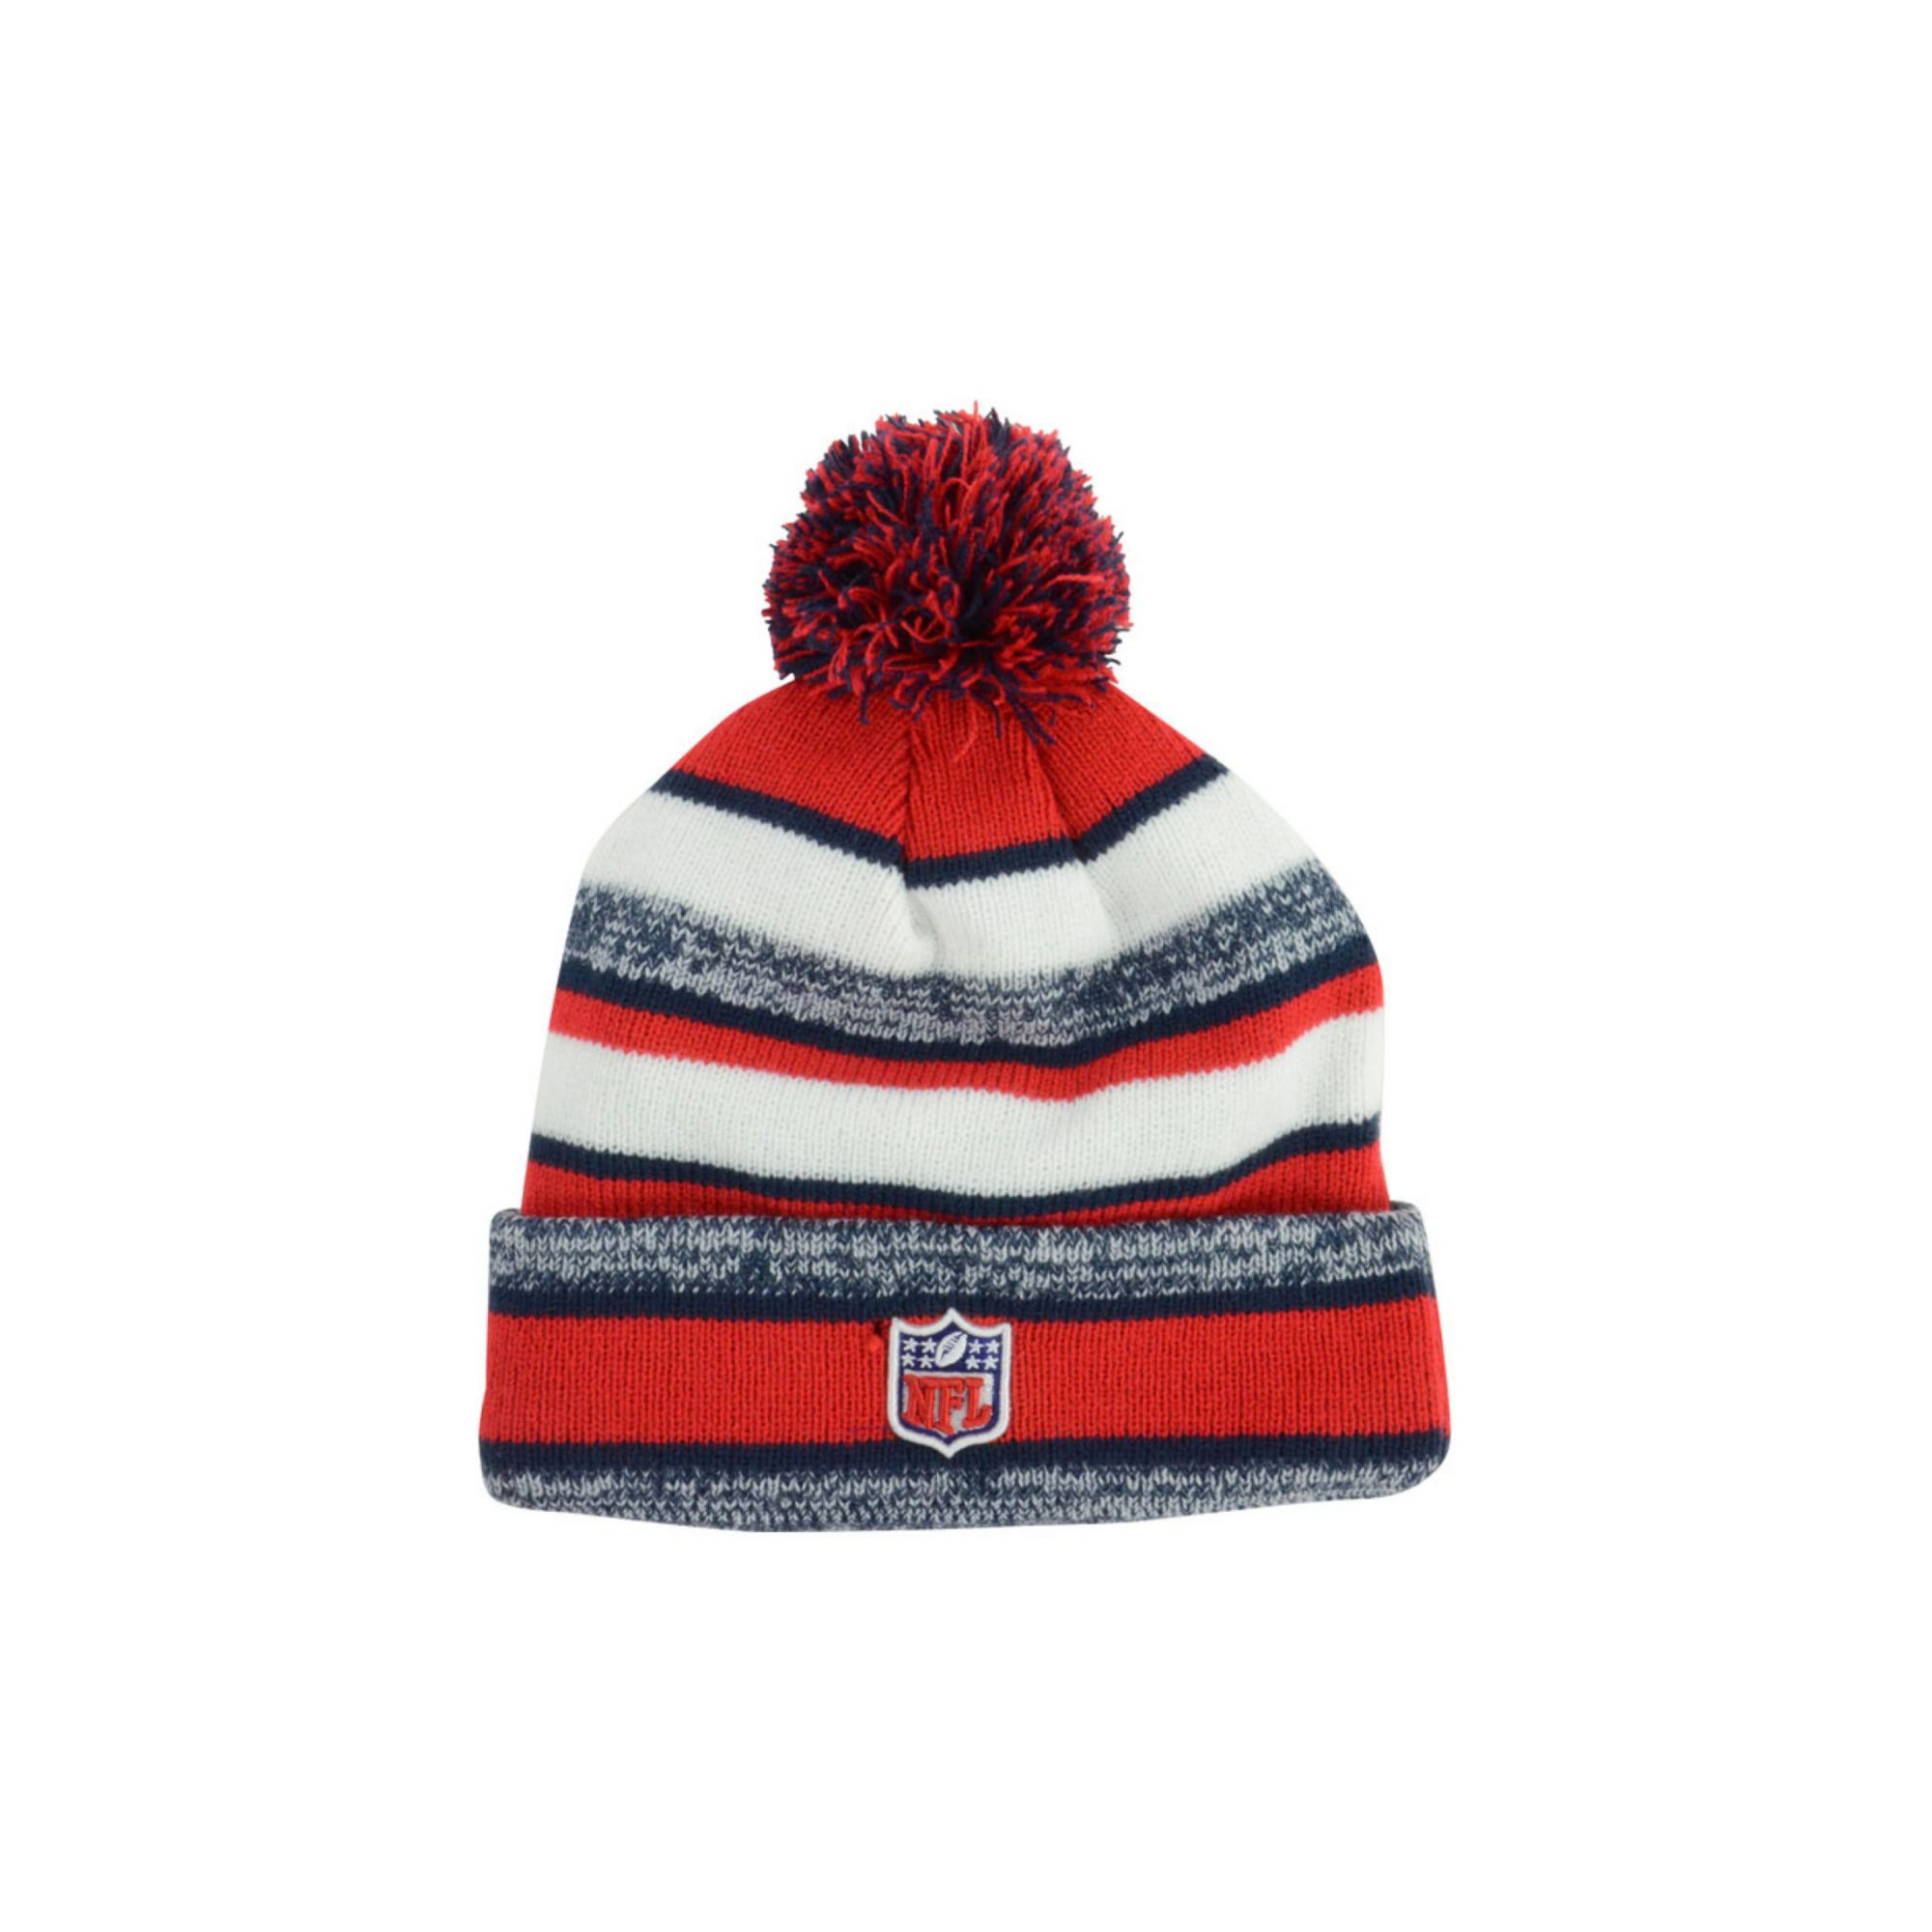 dcce3a9be8d ... france lyst ktz new england patriots sport knit hat in red for men  f3db9 b7fd6